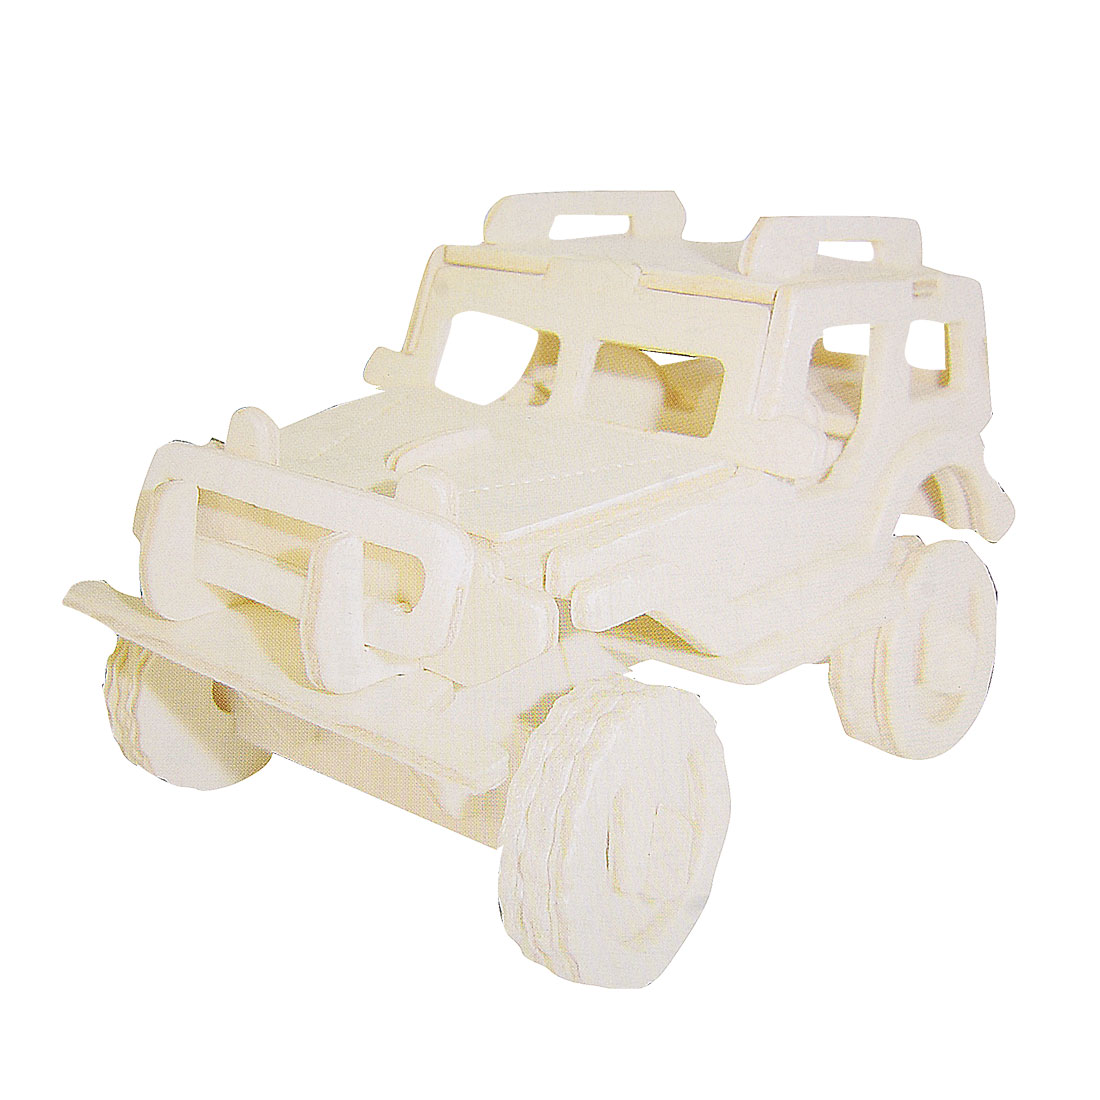 Child DIY Jeep Car Wooden Construction Kit Woodcraft Puzzle Toy Gift